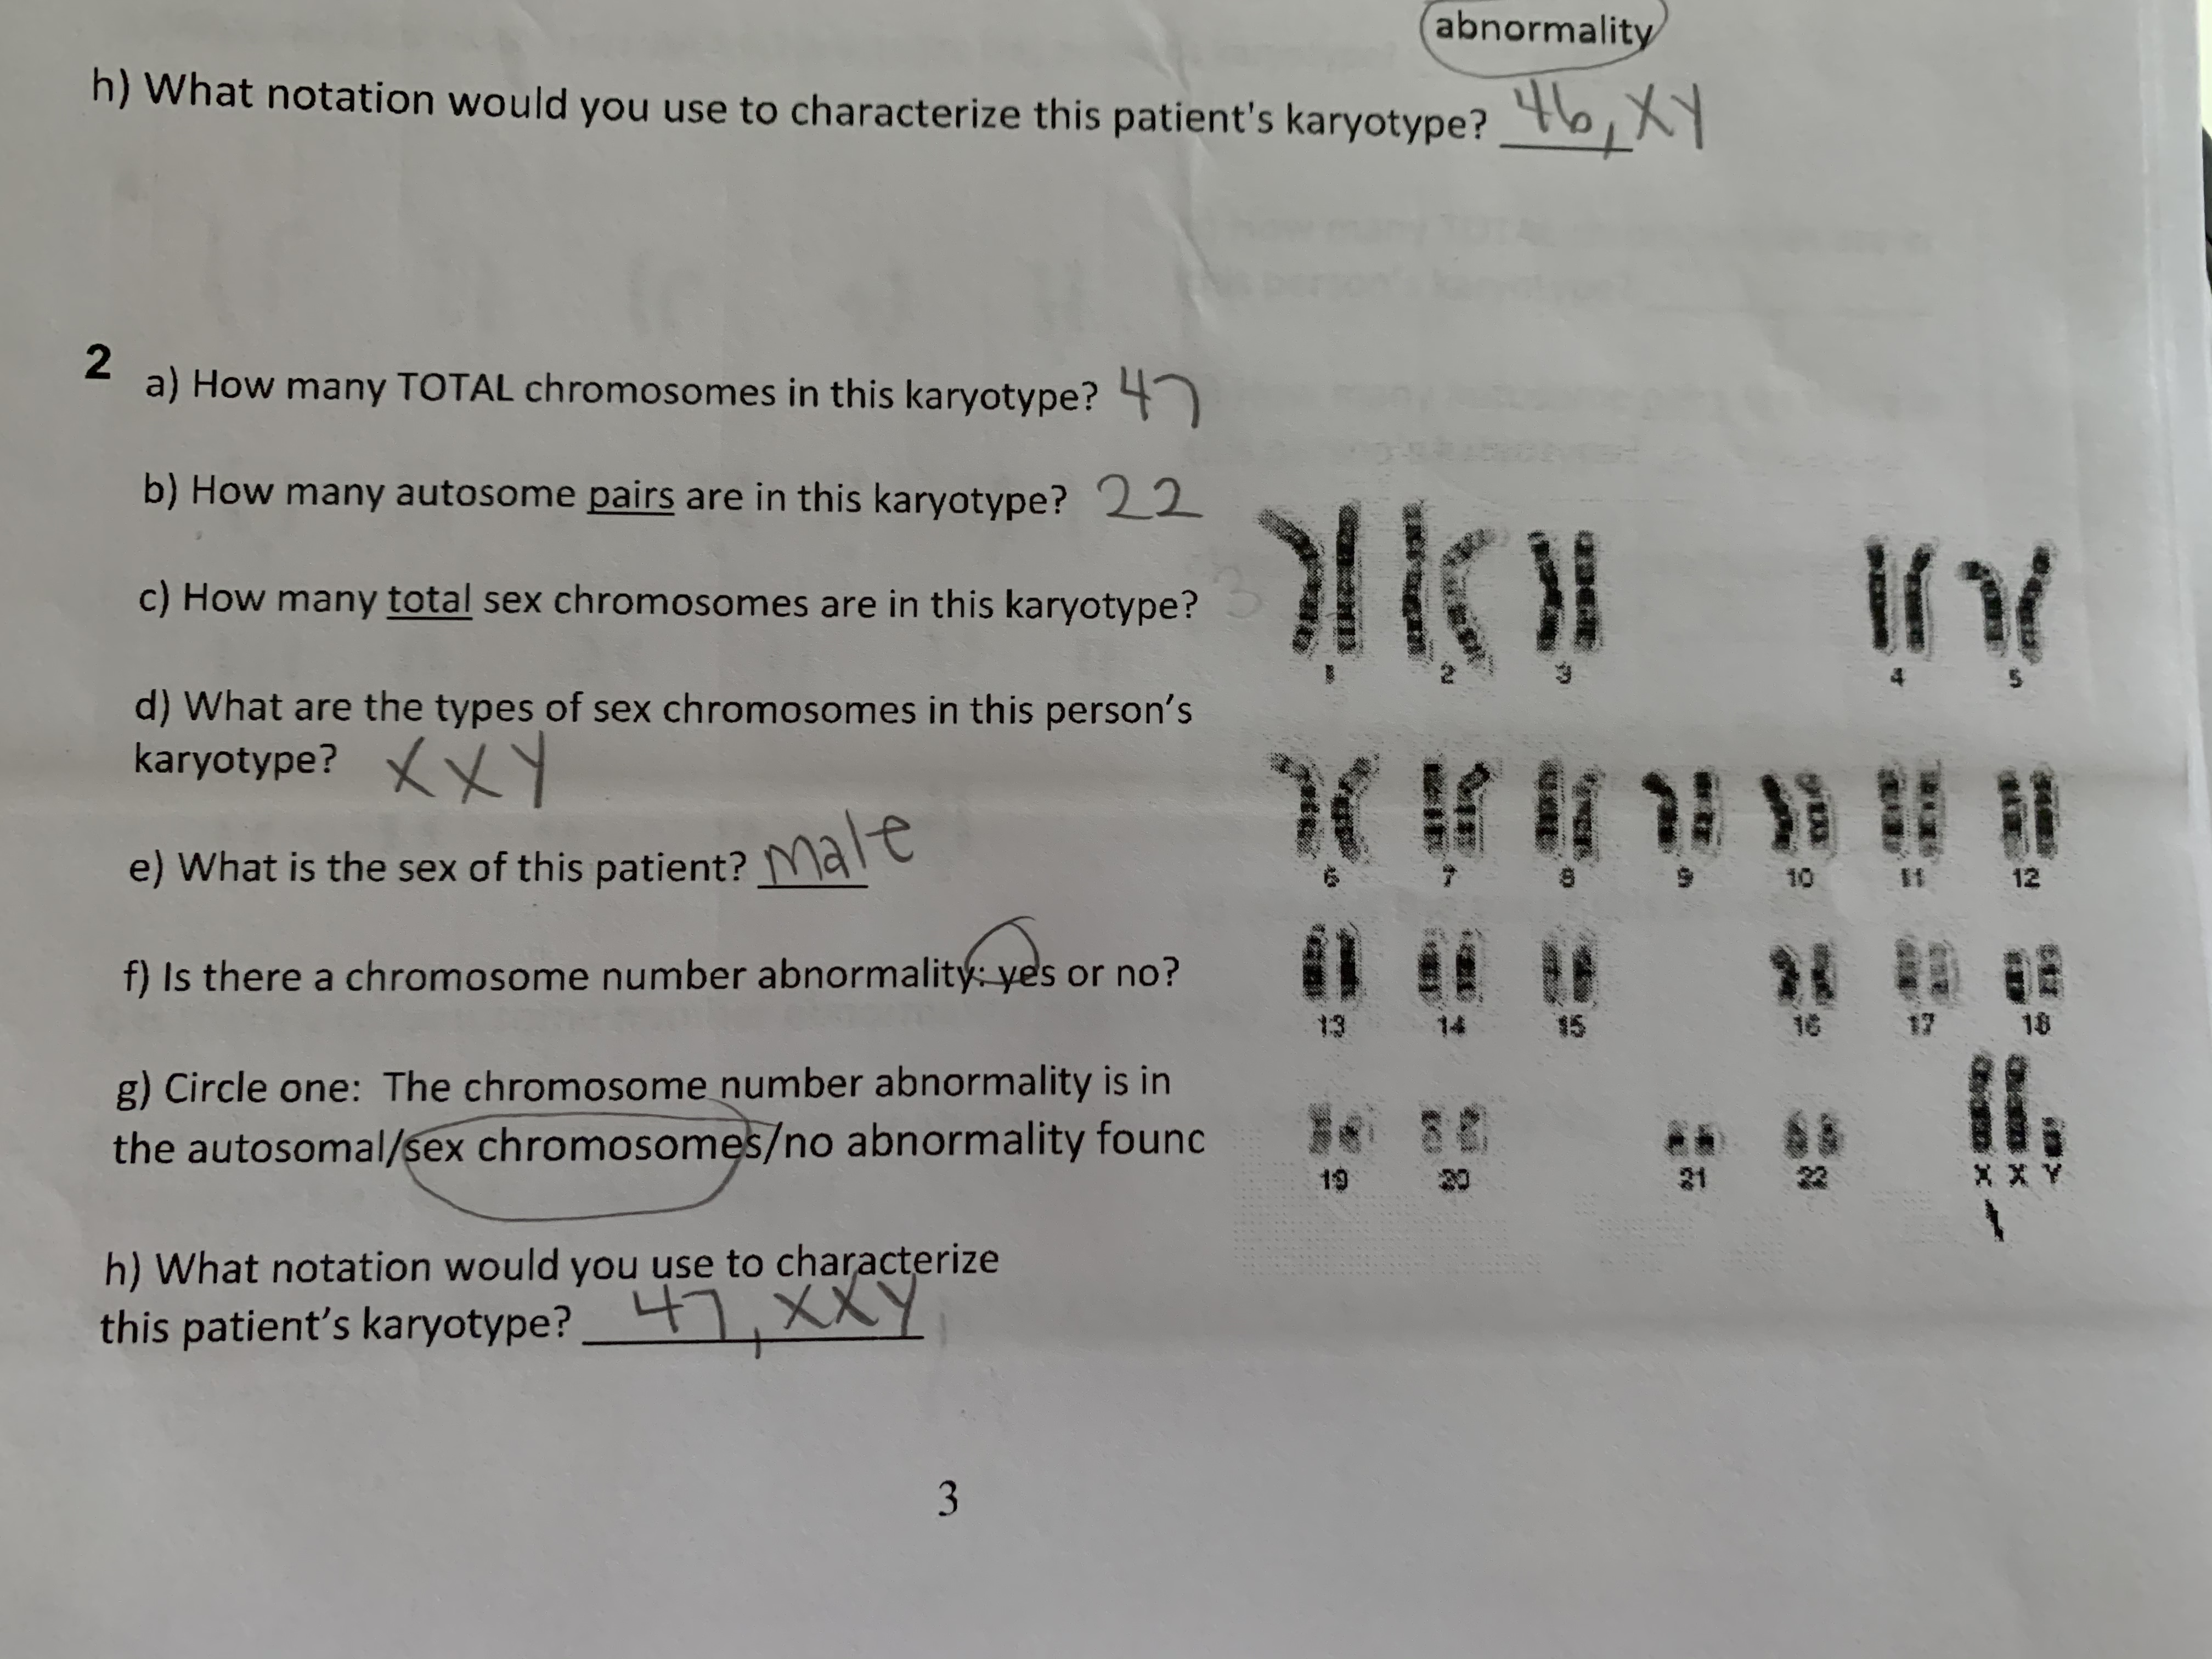 atm> abnormality h)What notation would you use to characterize this patient's karyotype? 2 a) How many TOTAL chromosomes in this karyotype? b) How many autosome pairs are in this karyotype? 22 c) How many total sex chromosomes are in this karyotype? 5 d) What are the types of sex chromosomes in this person's karyotype? t Male e) What is the sex of this patient? K t 10 IM 12 f) Is there a chromosome number abnormality: yes or no? 13 14 16 18 g) Circle one: The chromosome number abnormality is in the autosomal/sex chromosomes/no abnormality founc as 19 21 h) What notation would you use to characterize this patient's karyotype? XXY 3